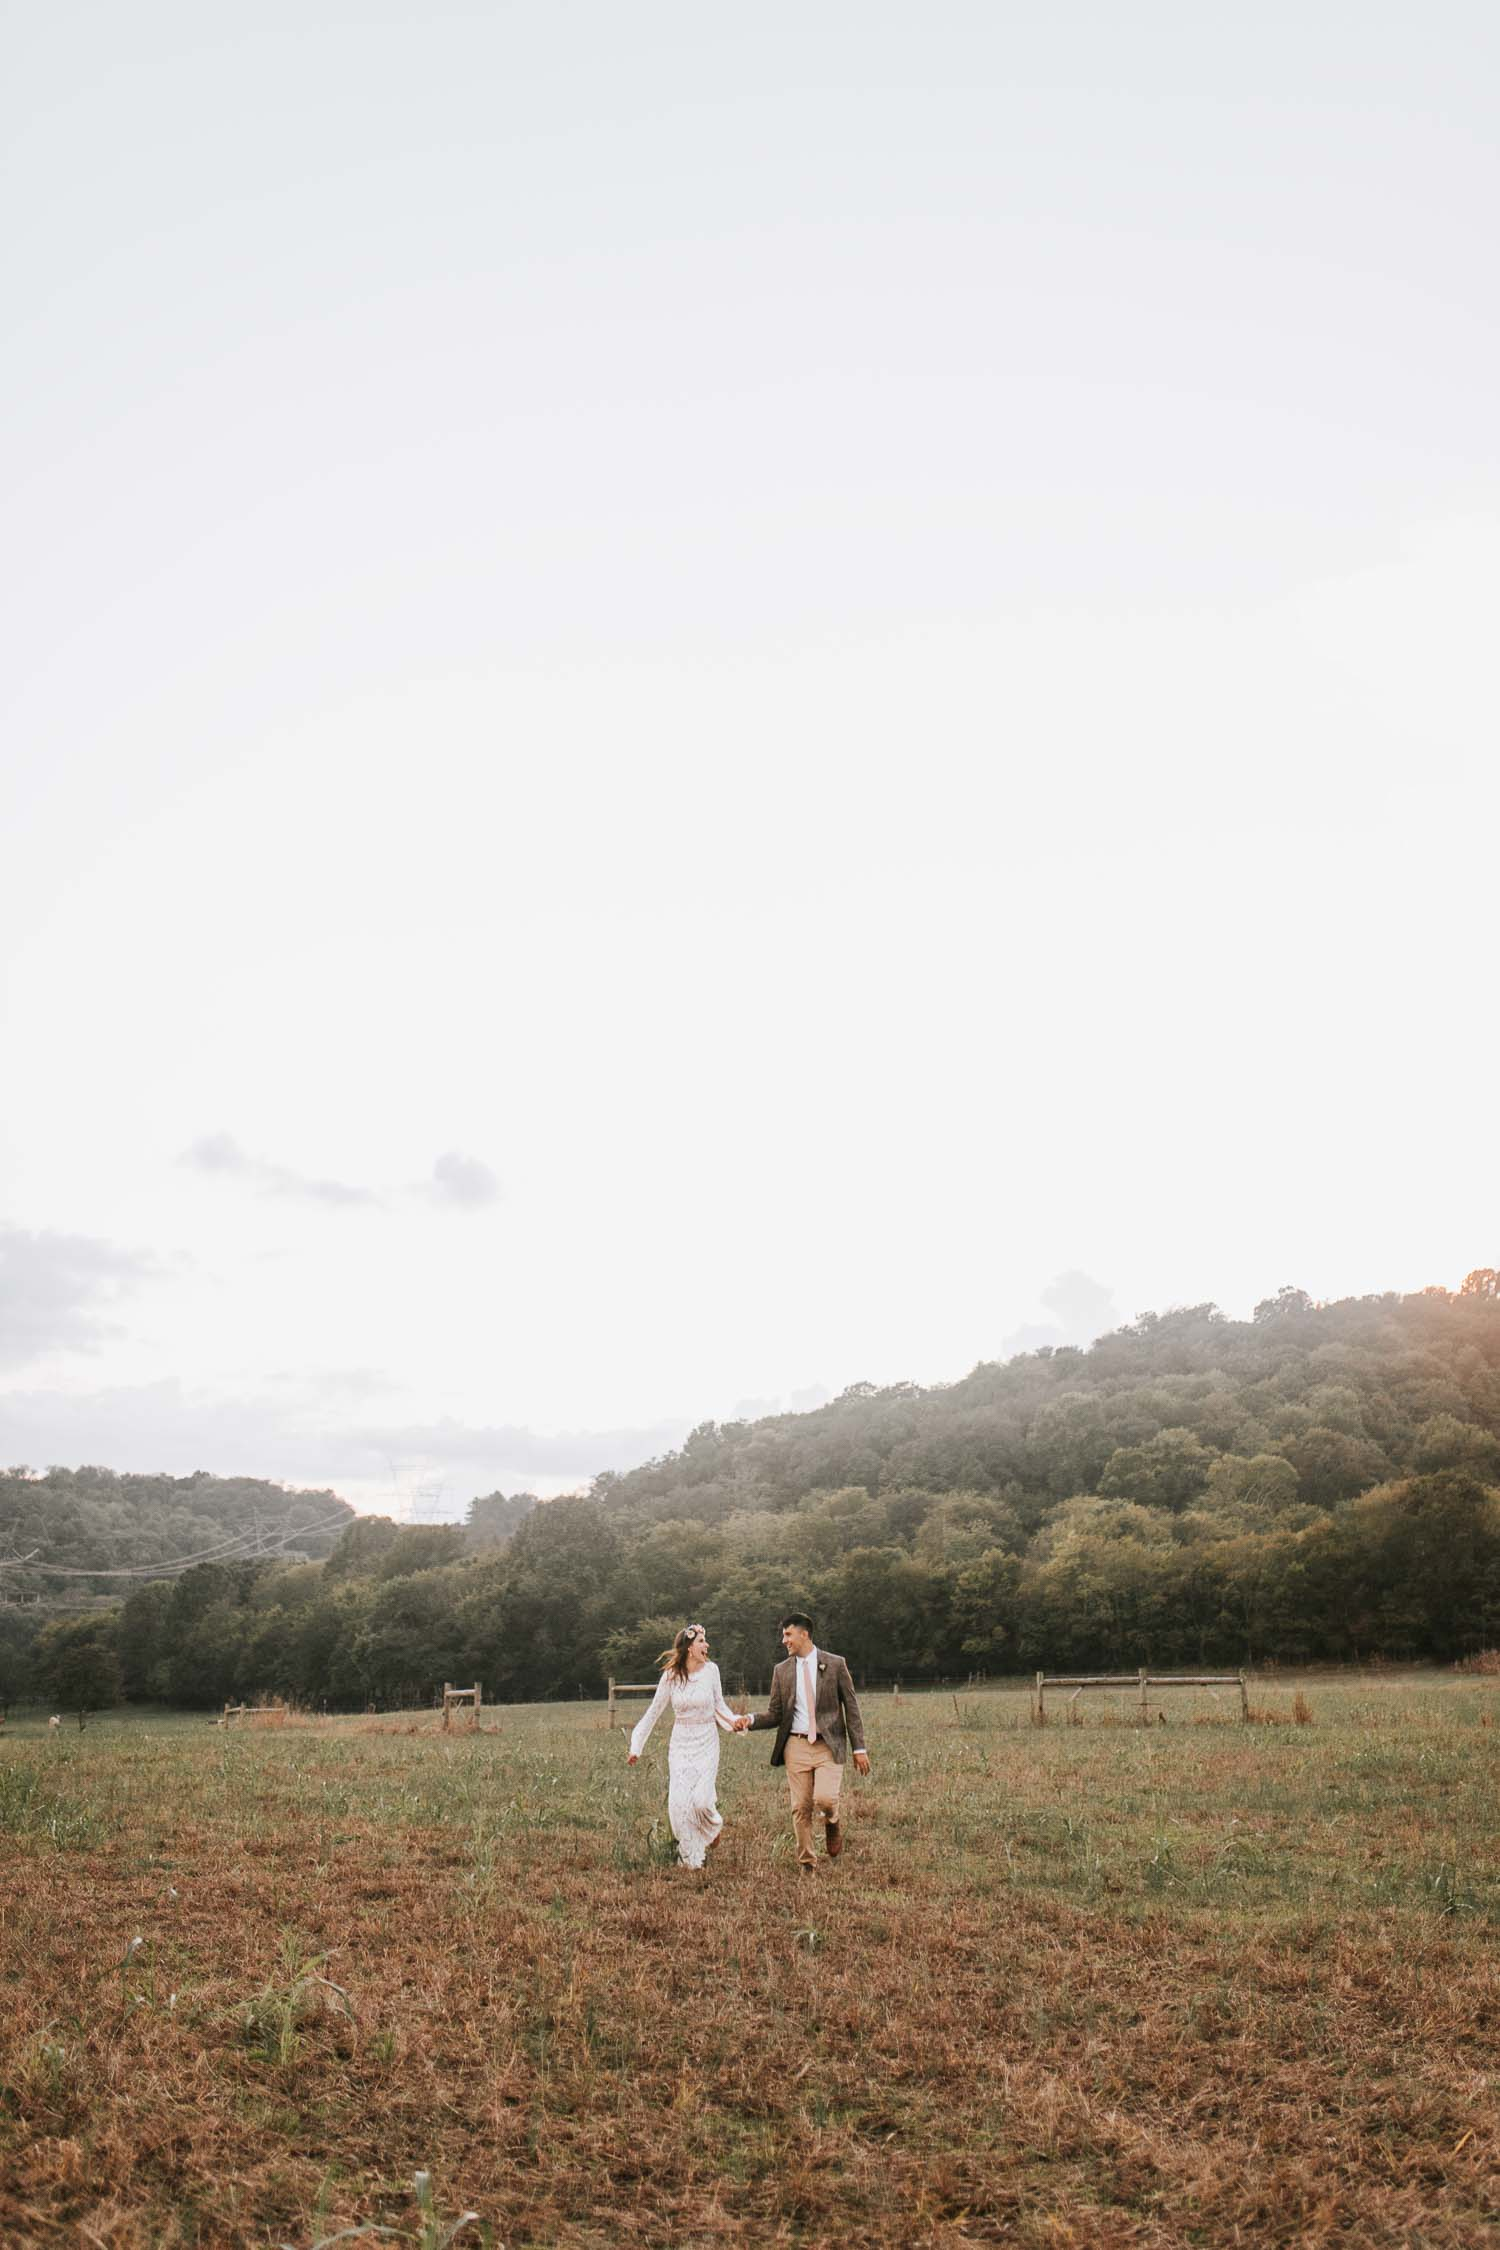 NashvilleWeddingPhotographer (33 of 44).jpg